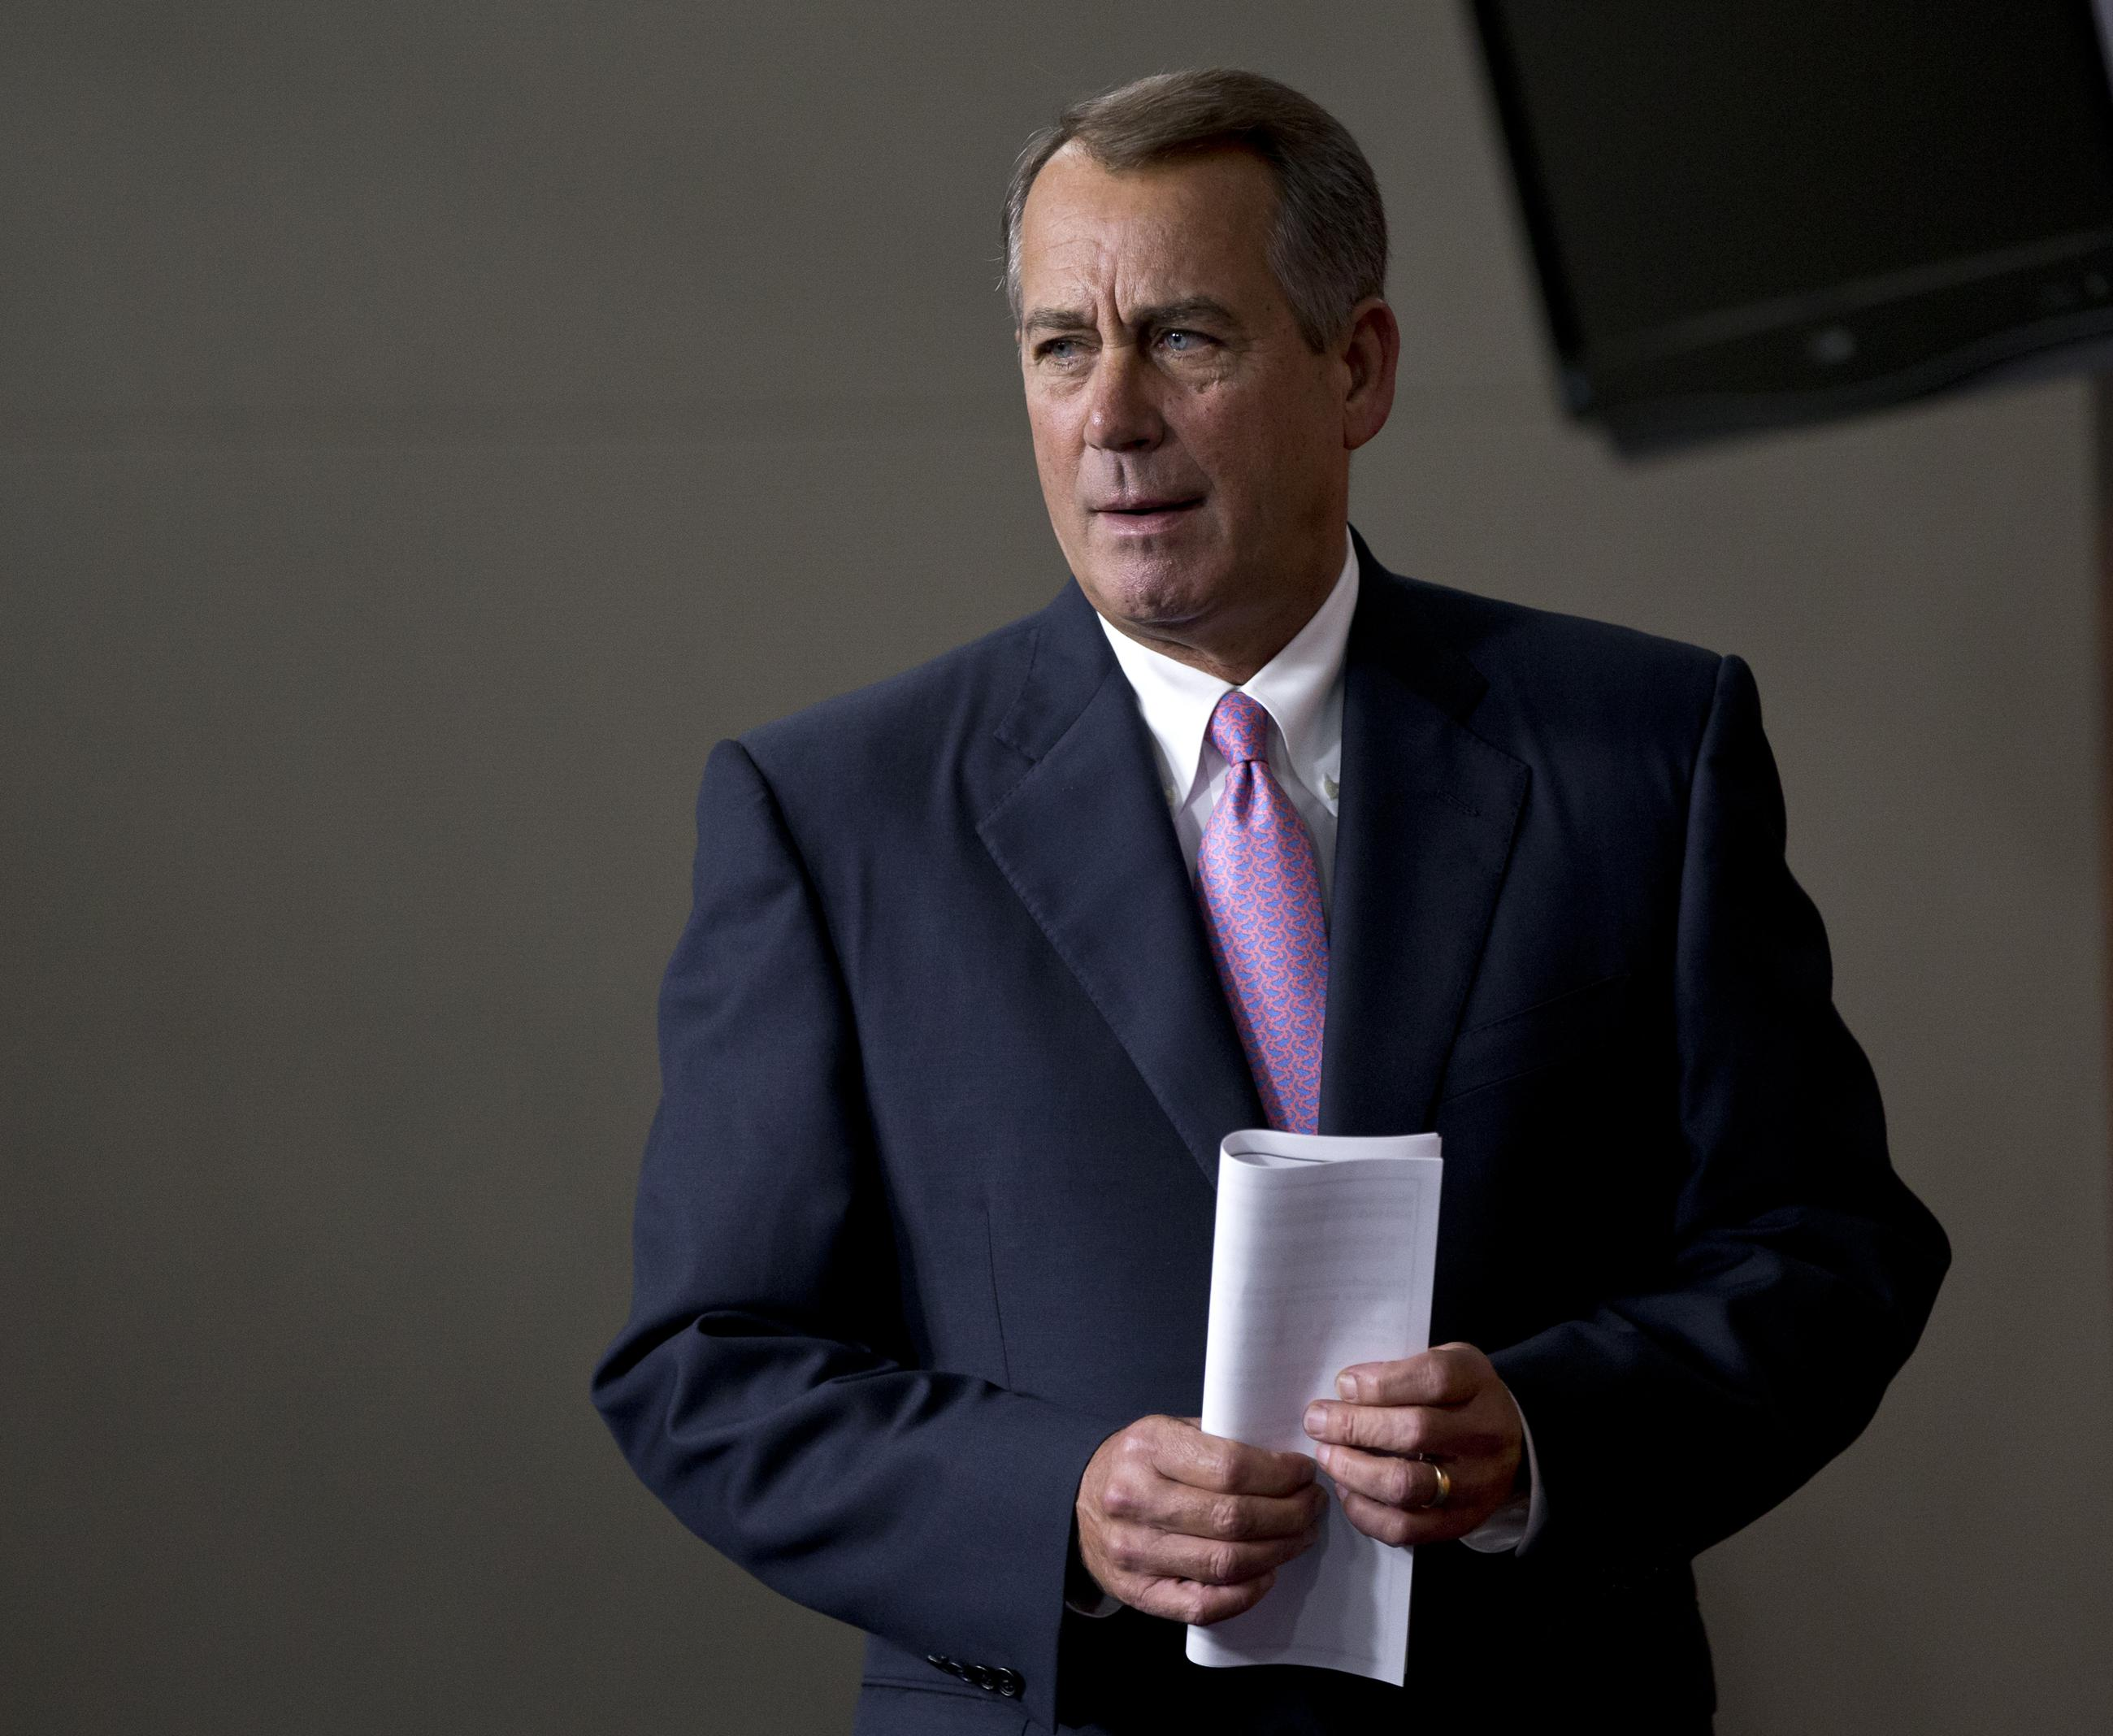 Congress Gets Assertive With the White House Over Syria